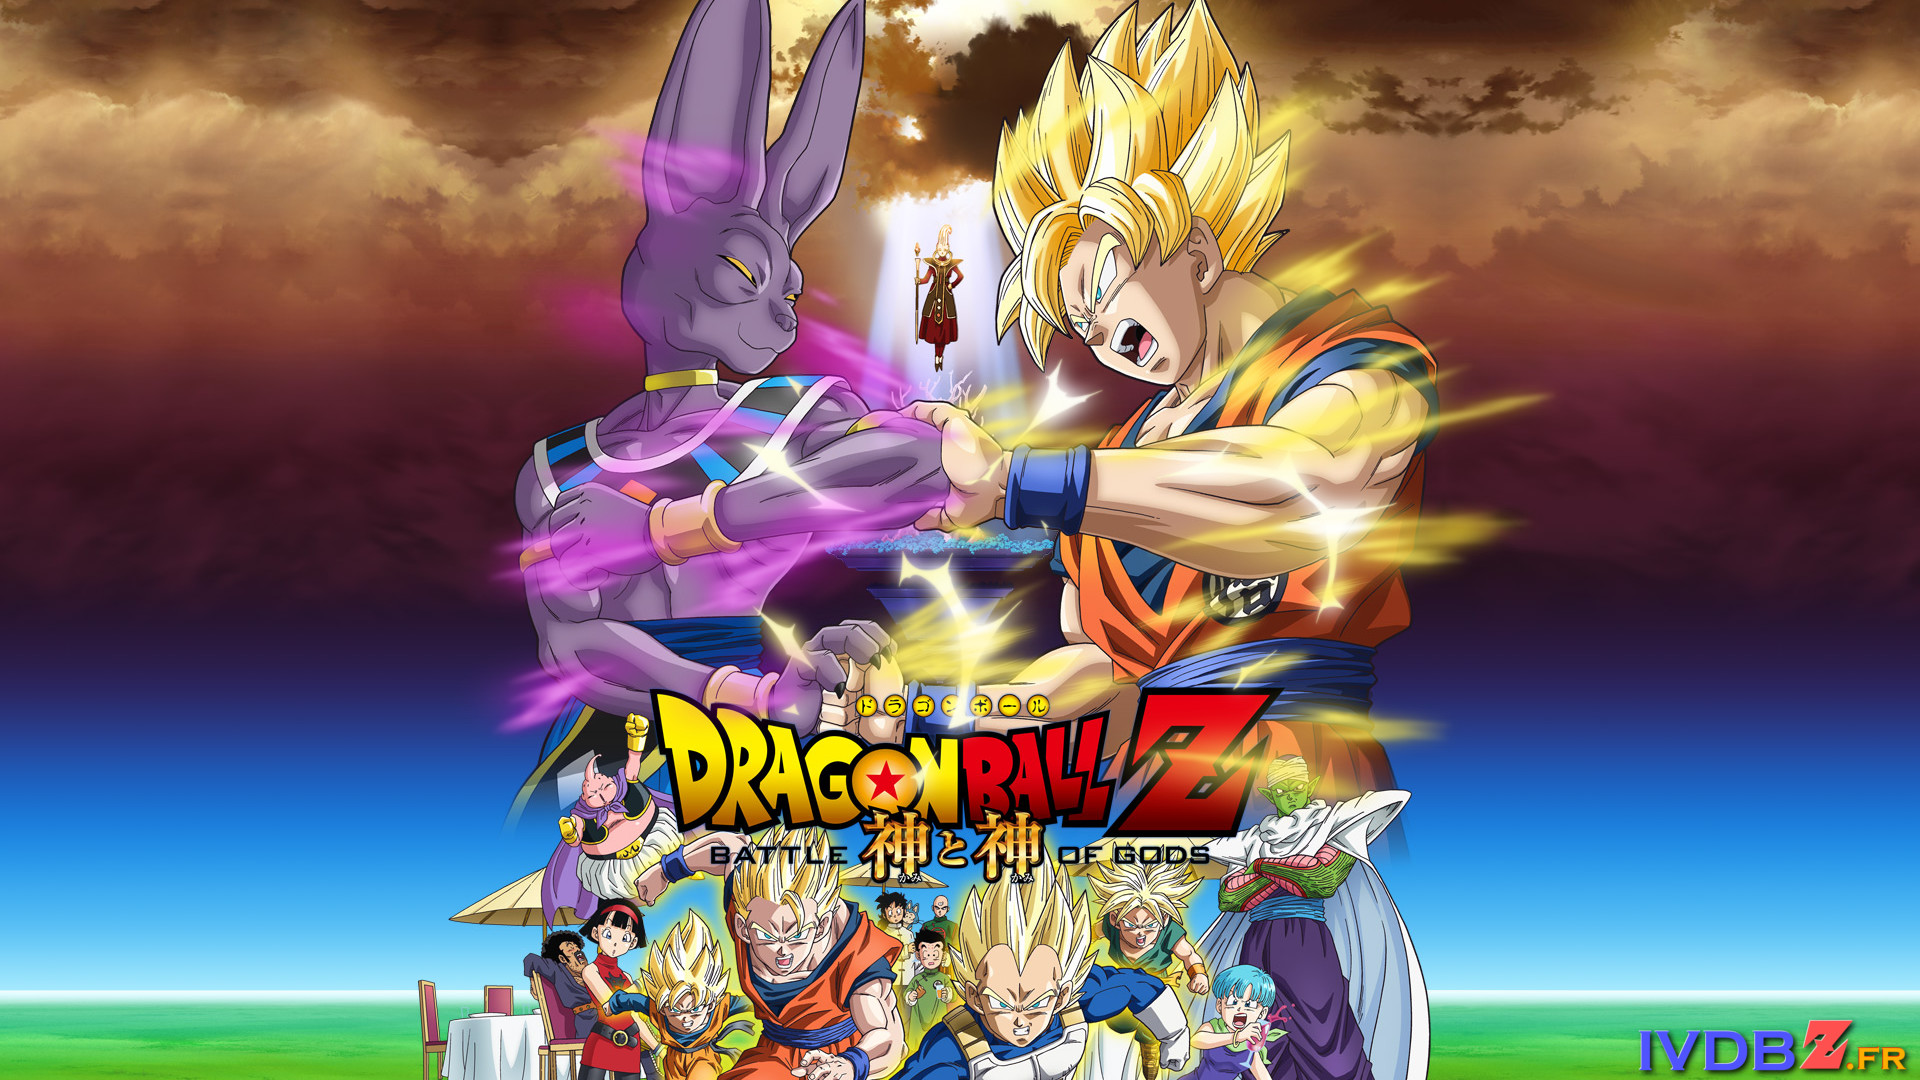 1920x1080 4 Dragon Ball Z: Battle of Gods HD Wallpapers | Backgrounds - Wallpaper  Abyss